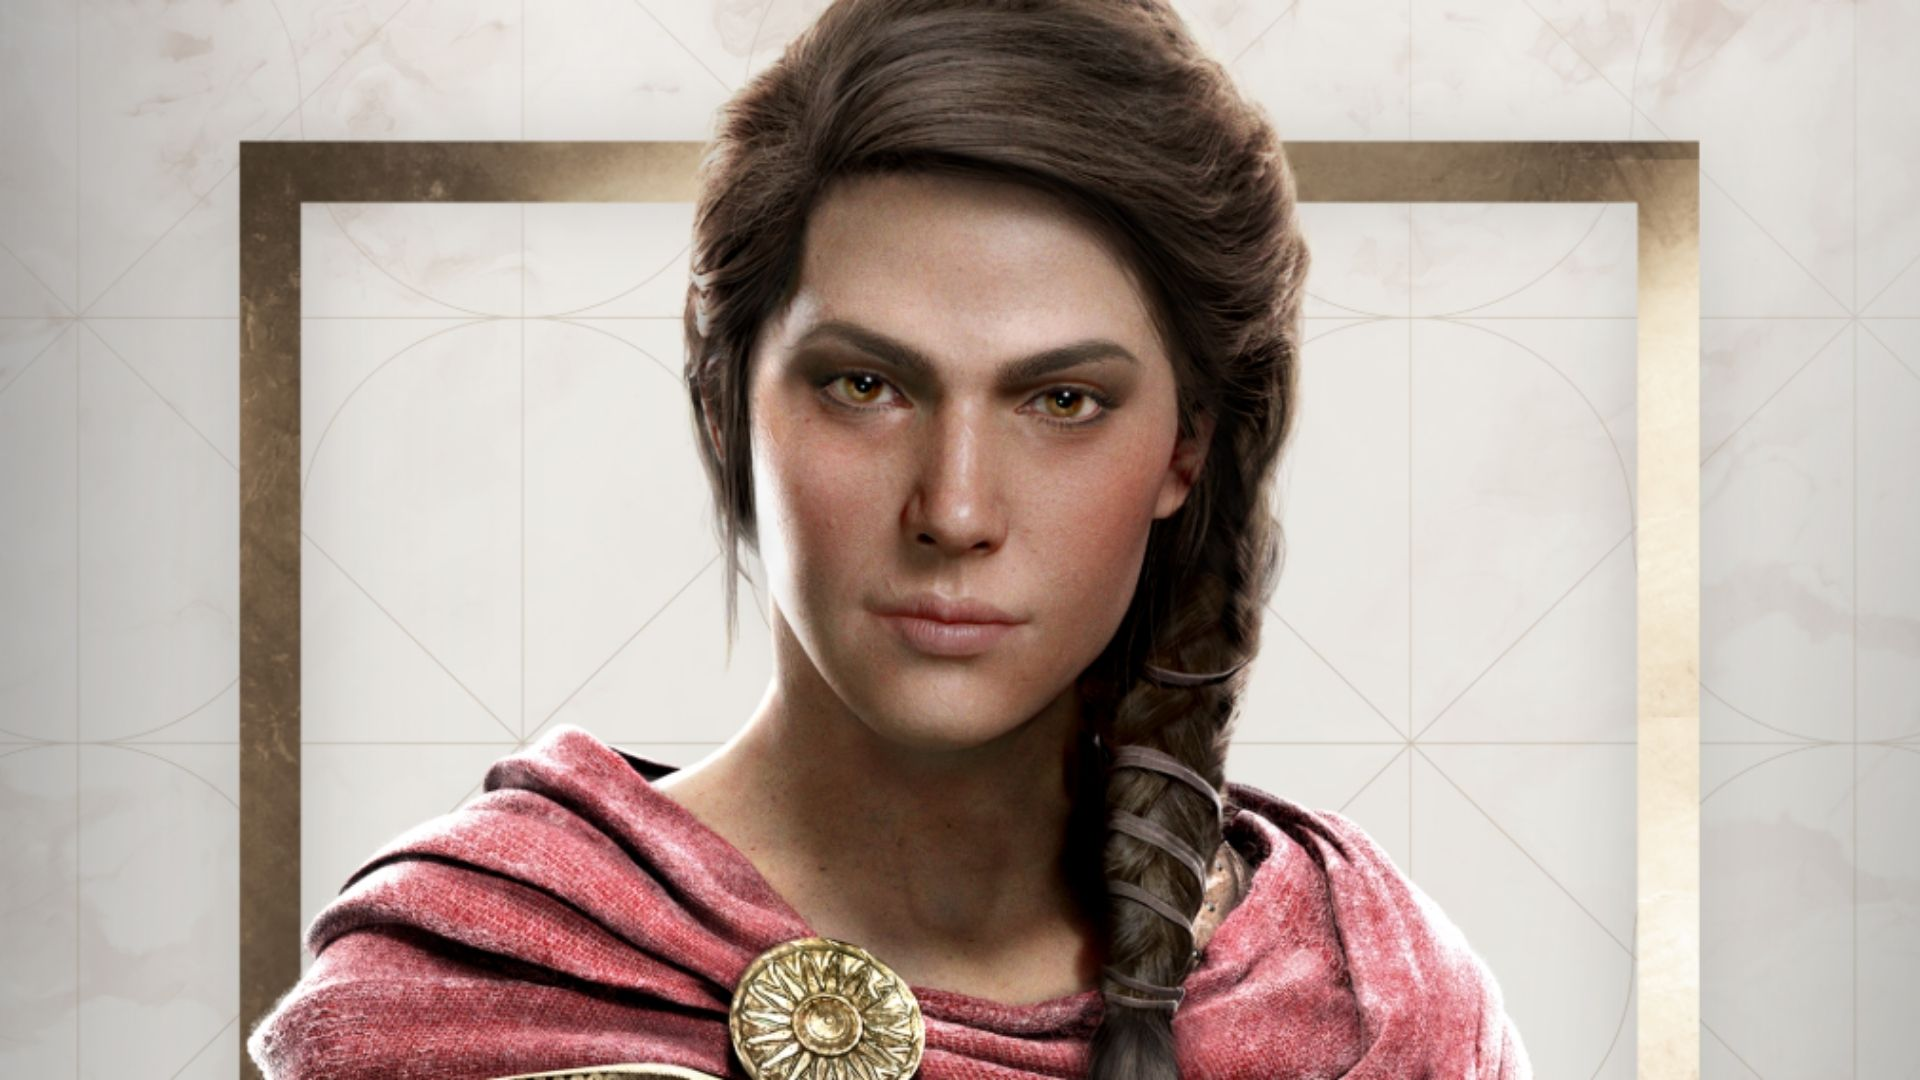 Kassandra, the female protagonist of Assassin's Creed Odyssey